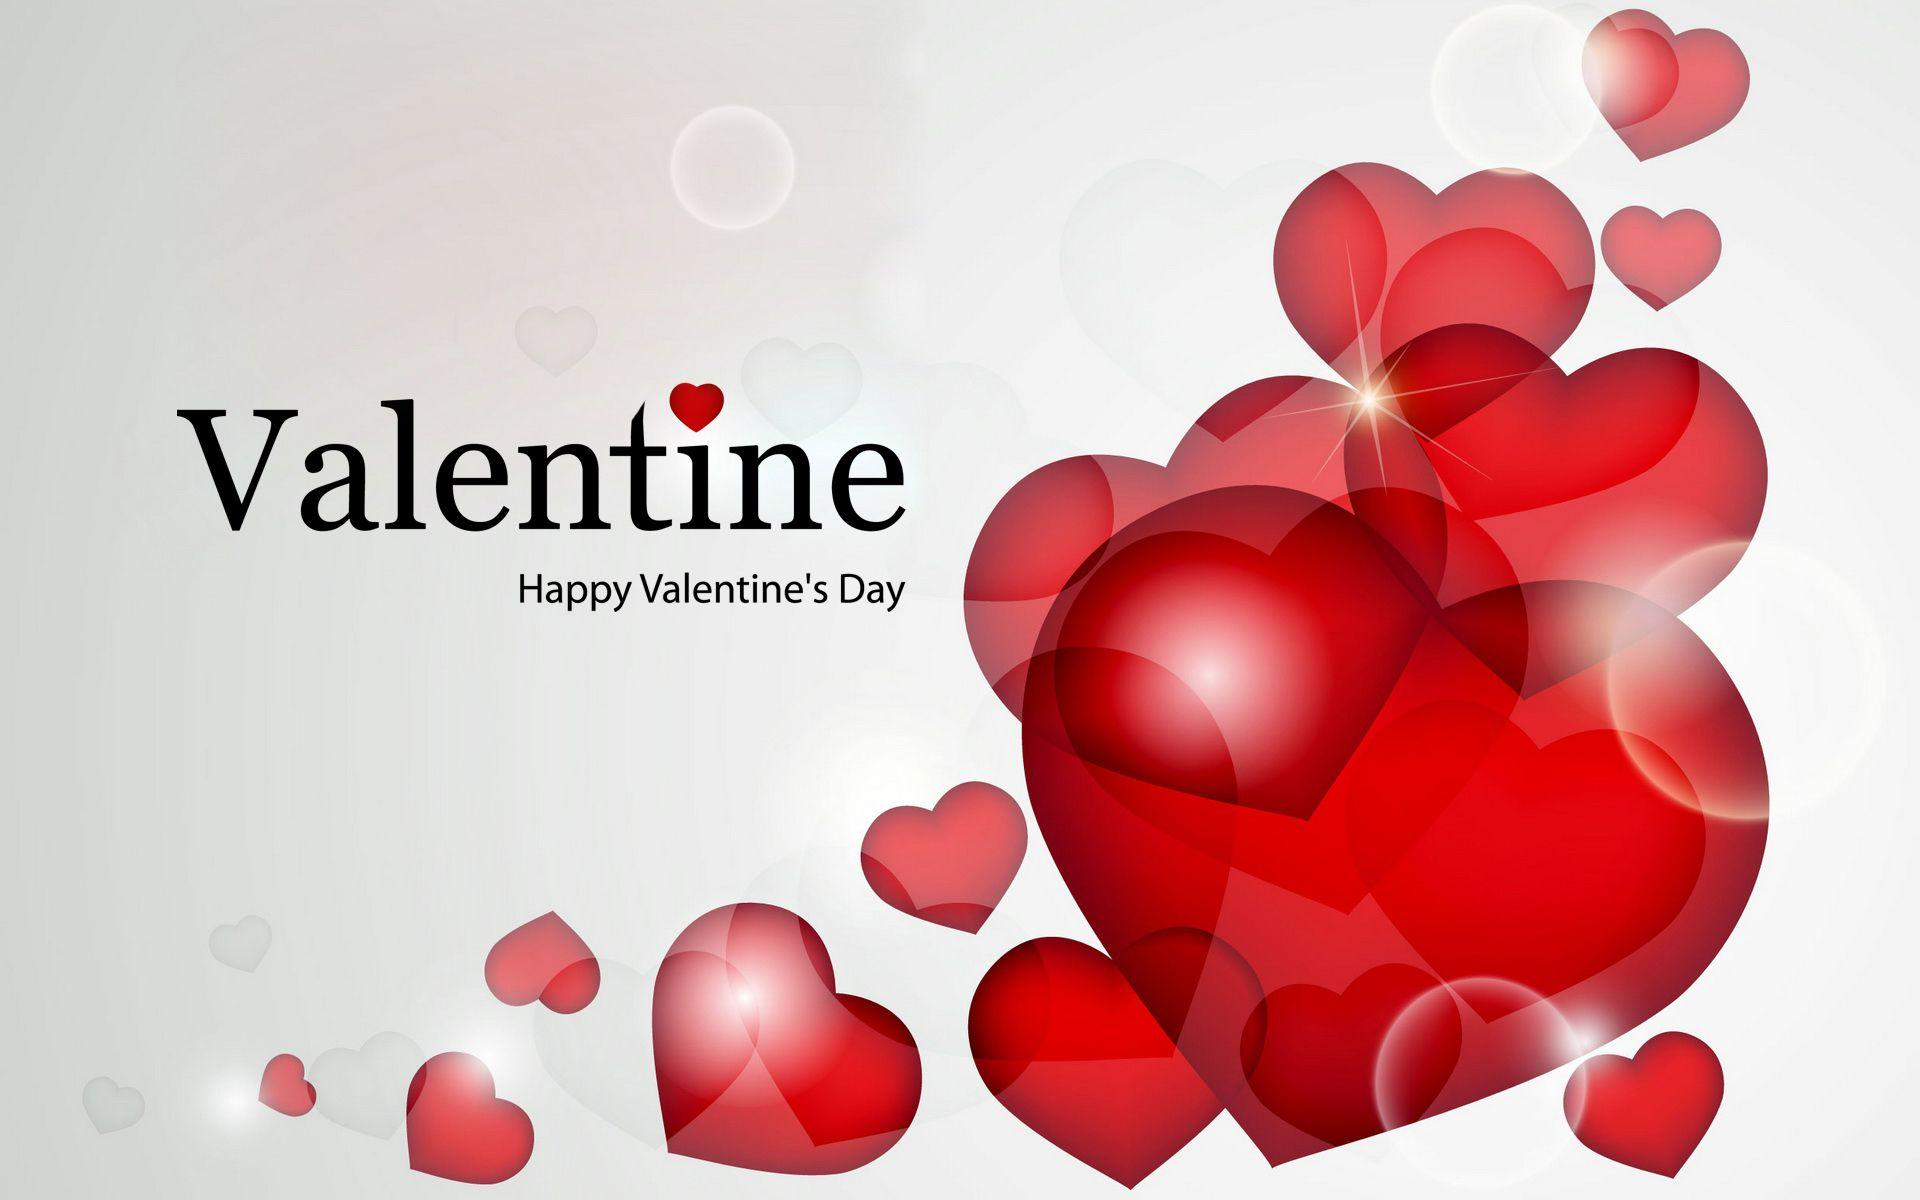 Valentines Day Wallpapers HD & 14th FEB images 2019 for lovers